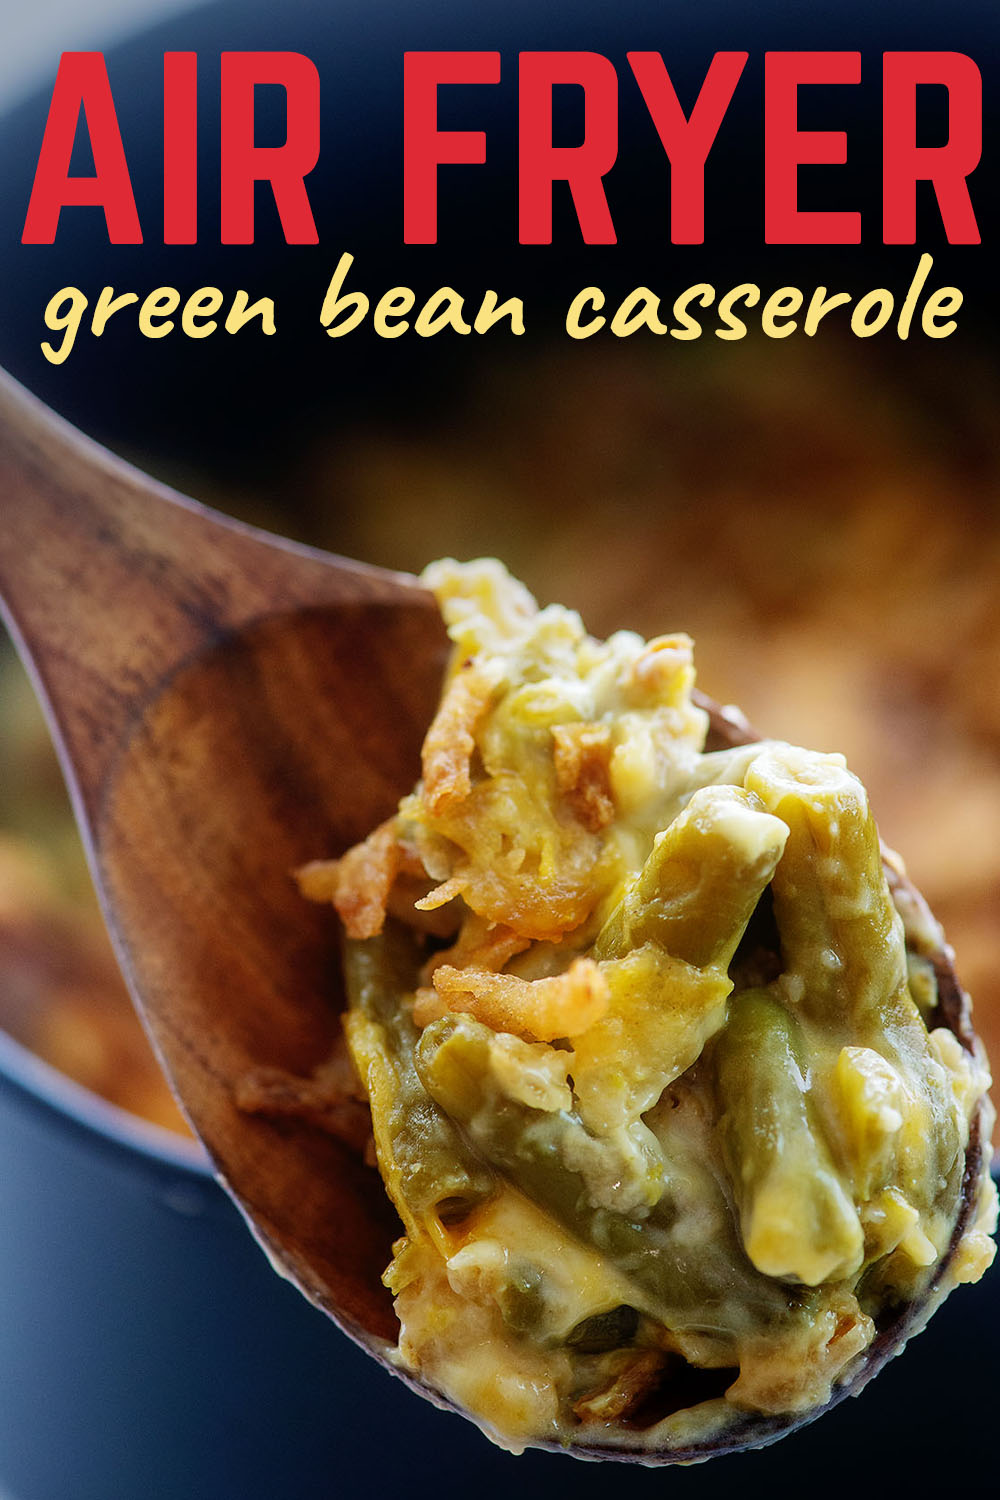 This green bean casserole is a wonderful texture with the soft green beans and the crunchy fried onions.  It is perfect!